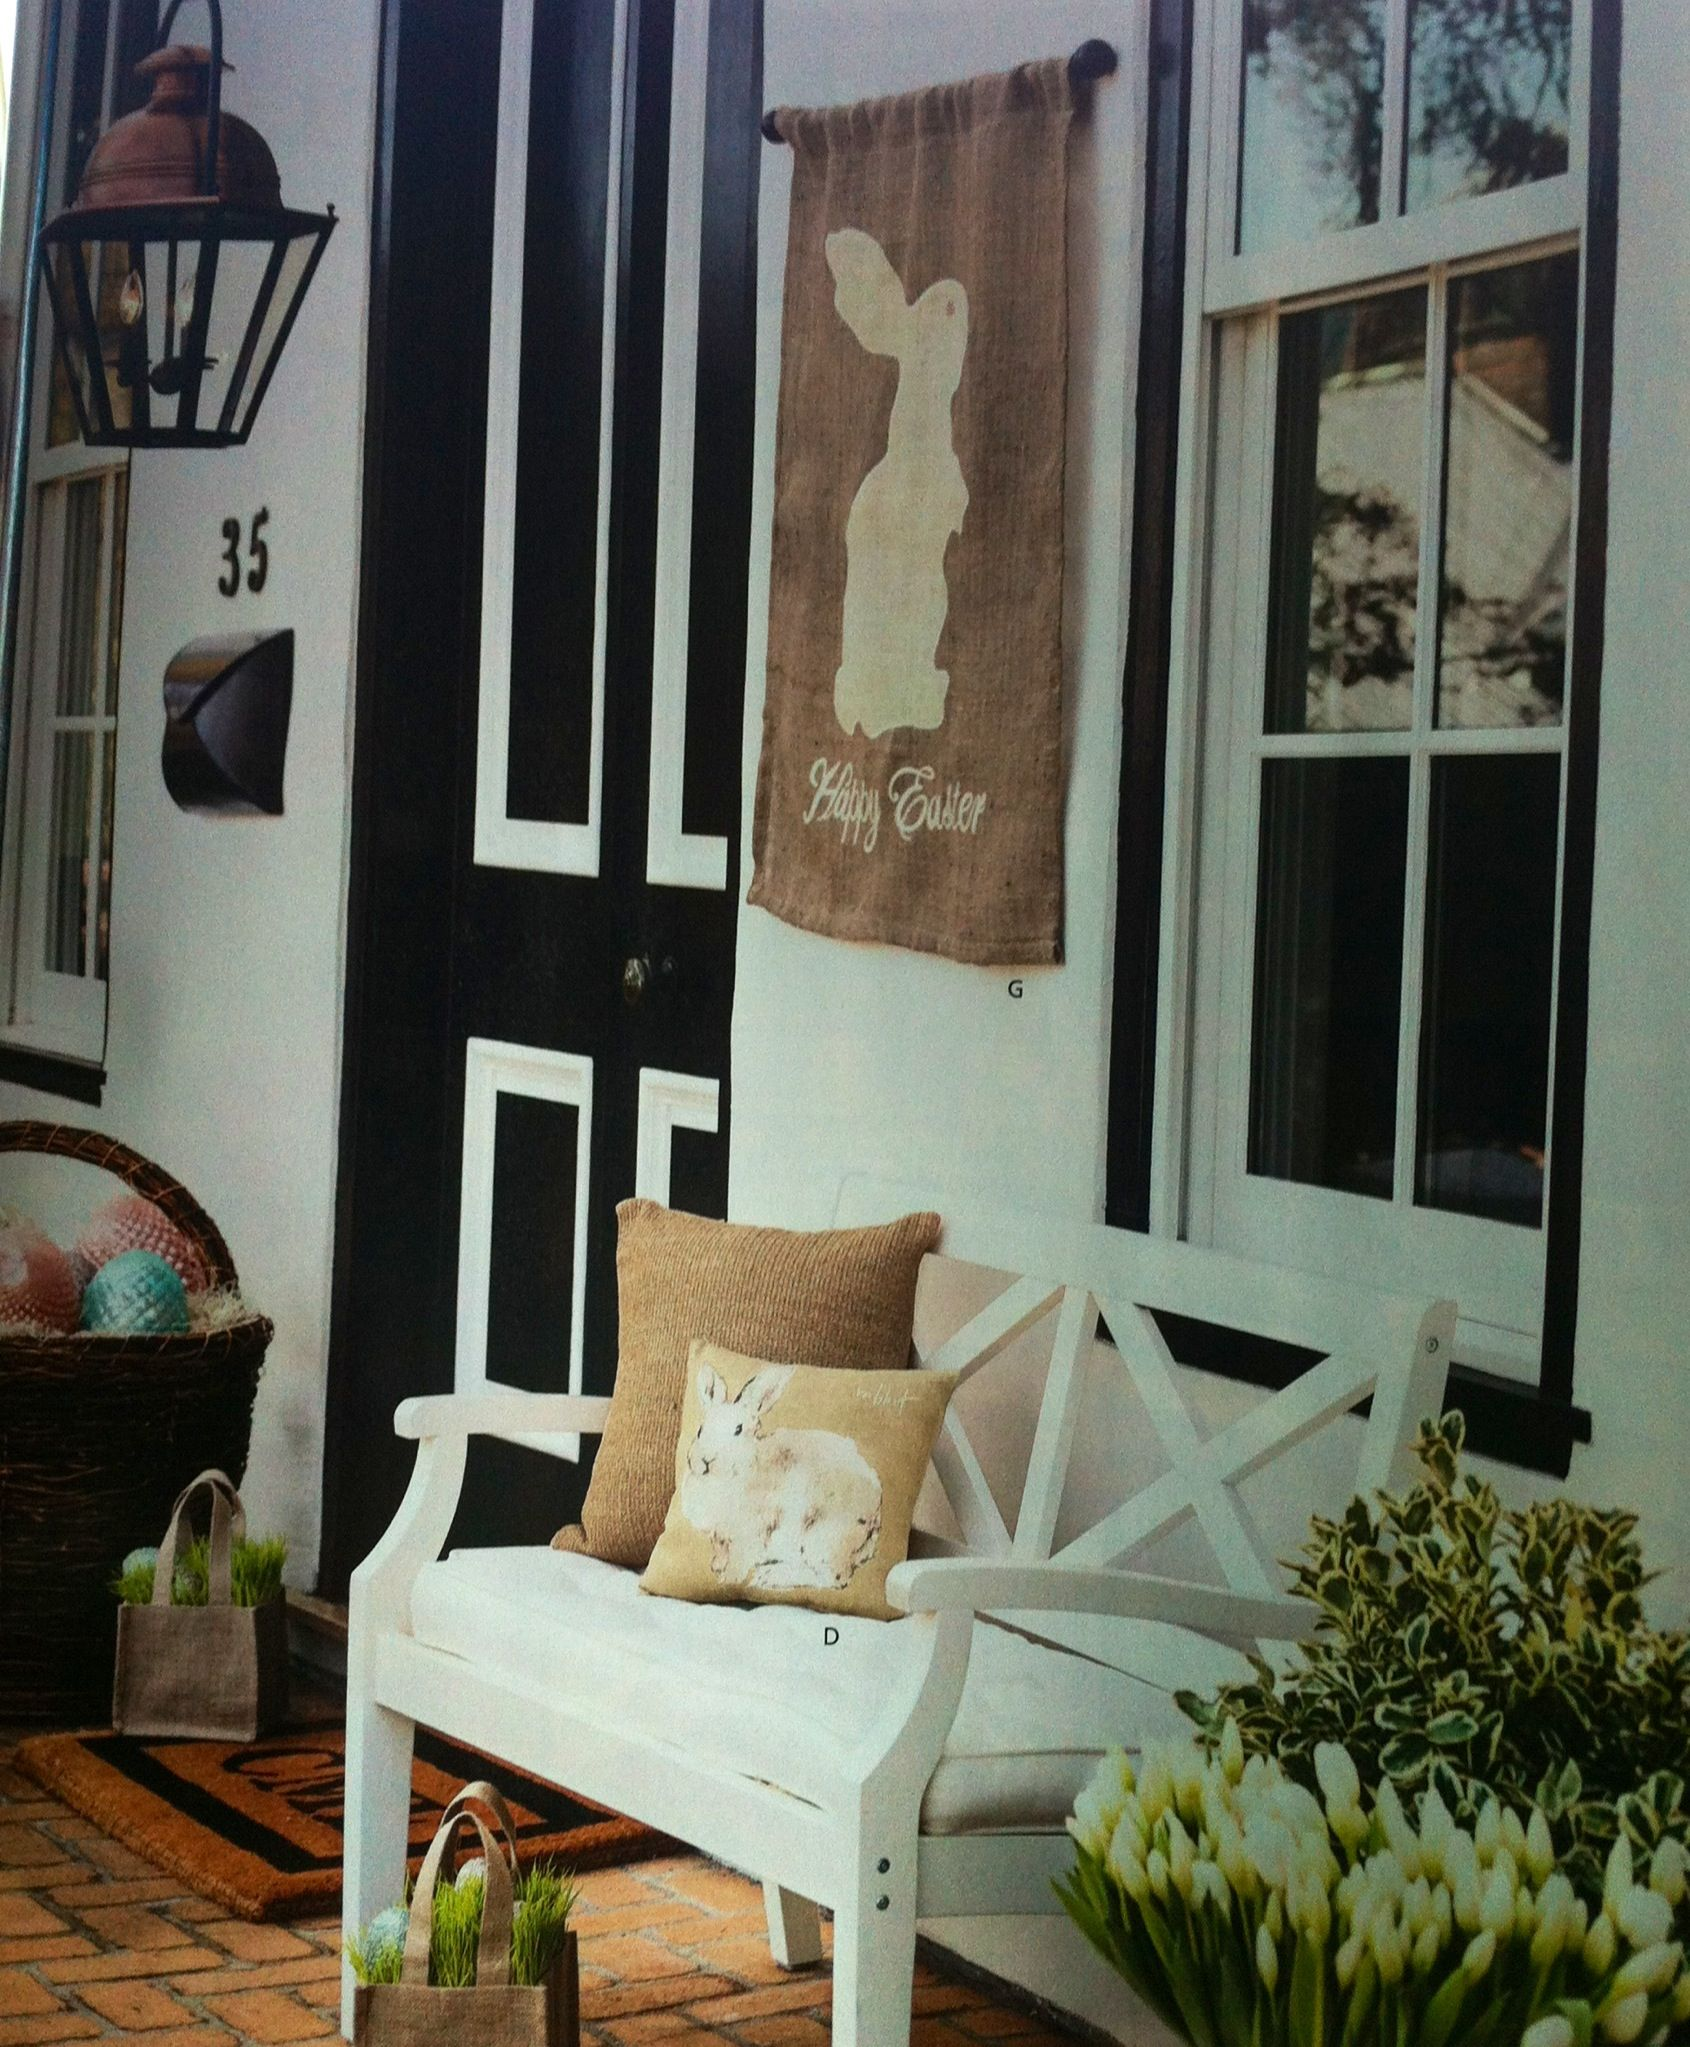 Pottery Barn Porch Ideas For Spring: Pottery Barn Easter Porch Decor...like The Wall Hanging